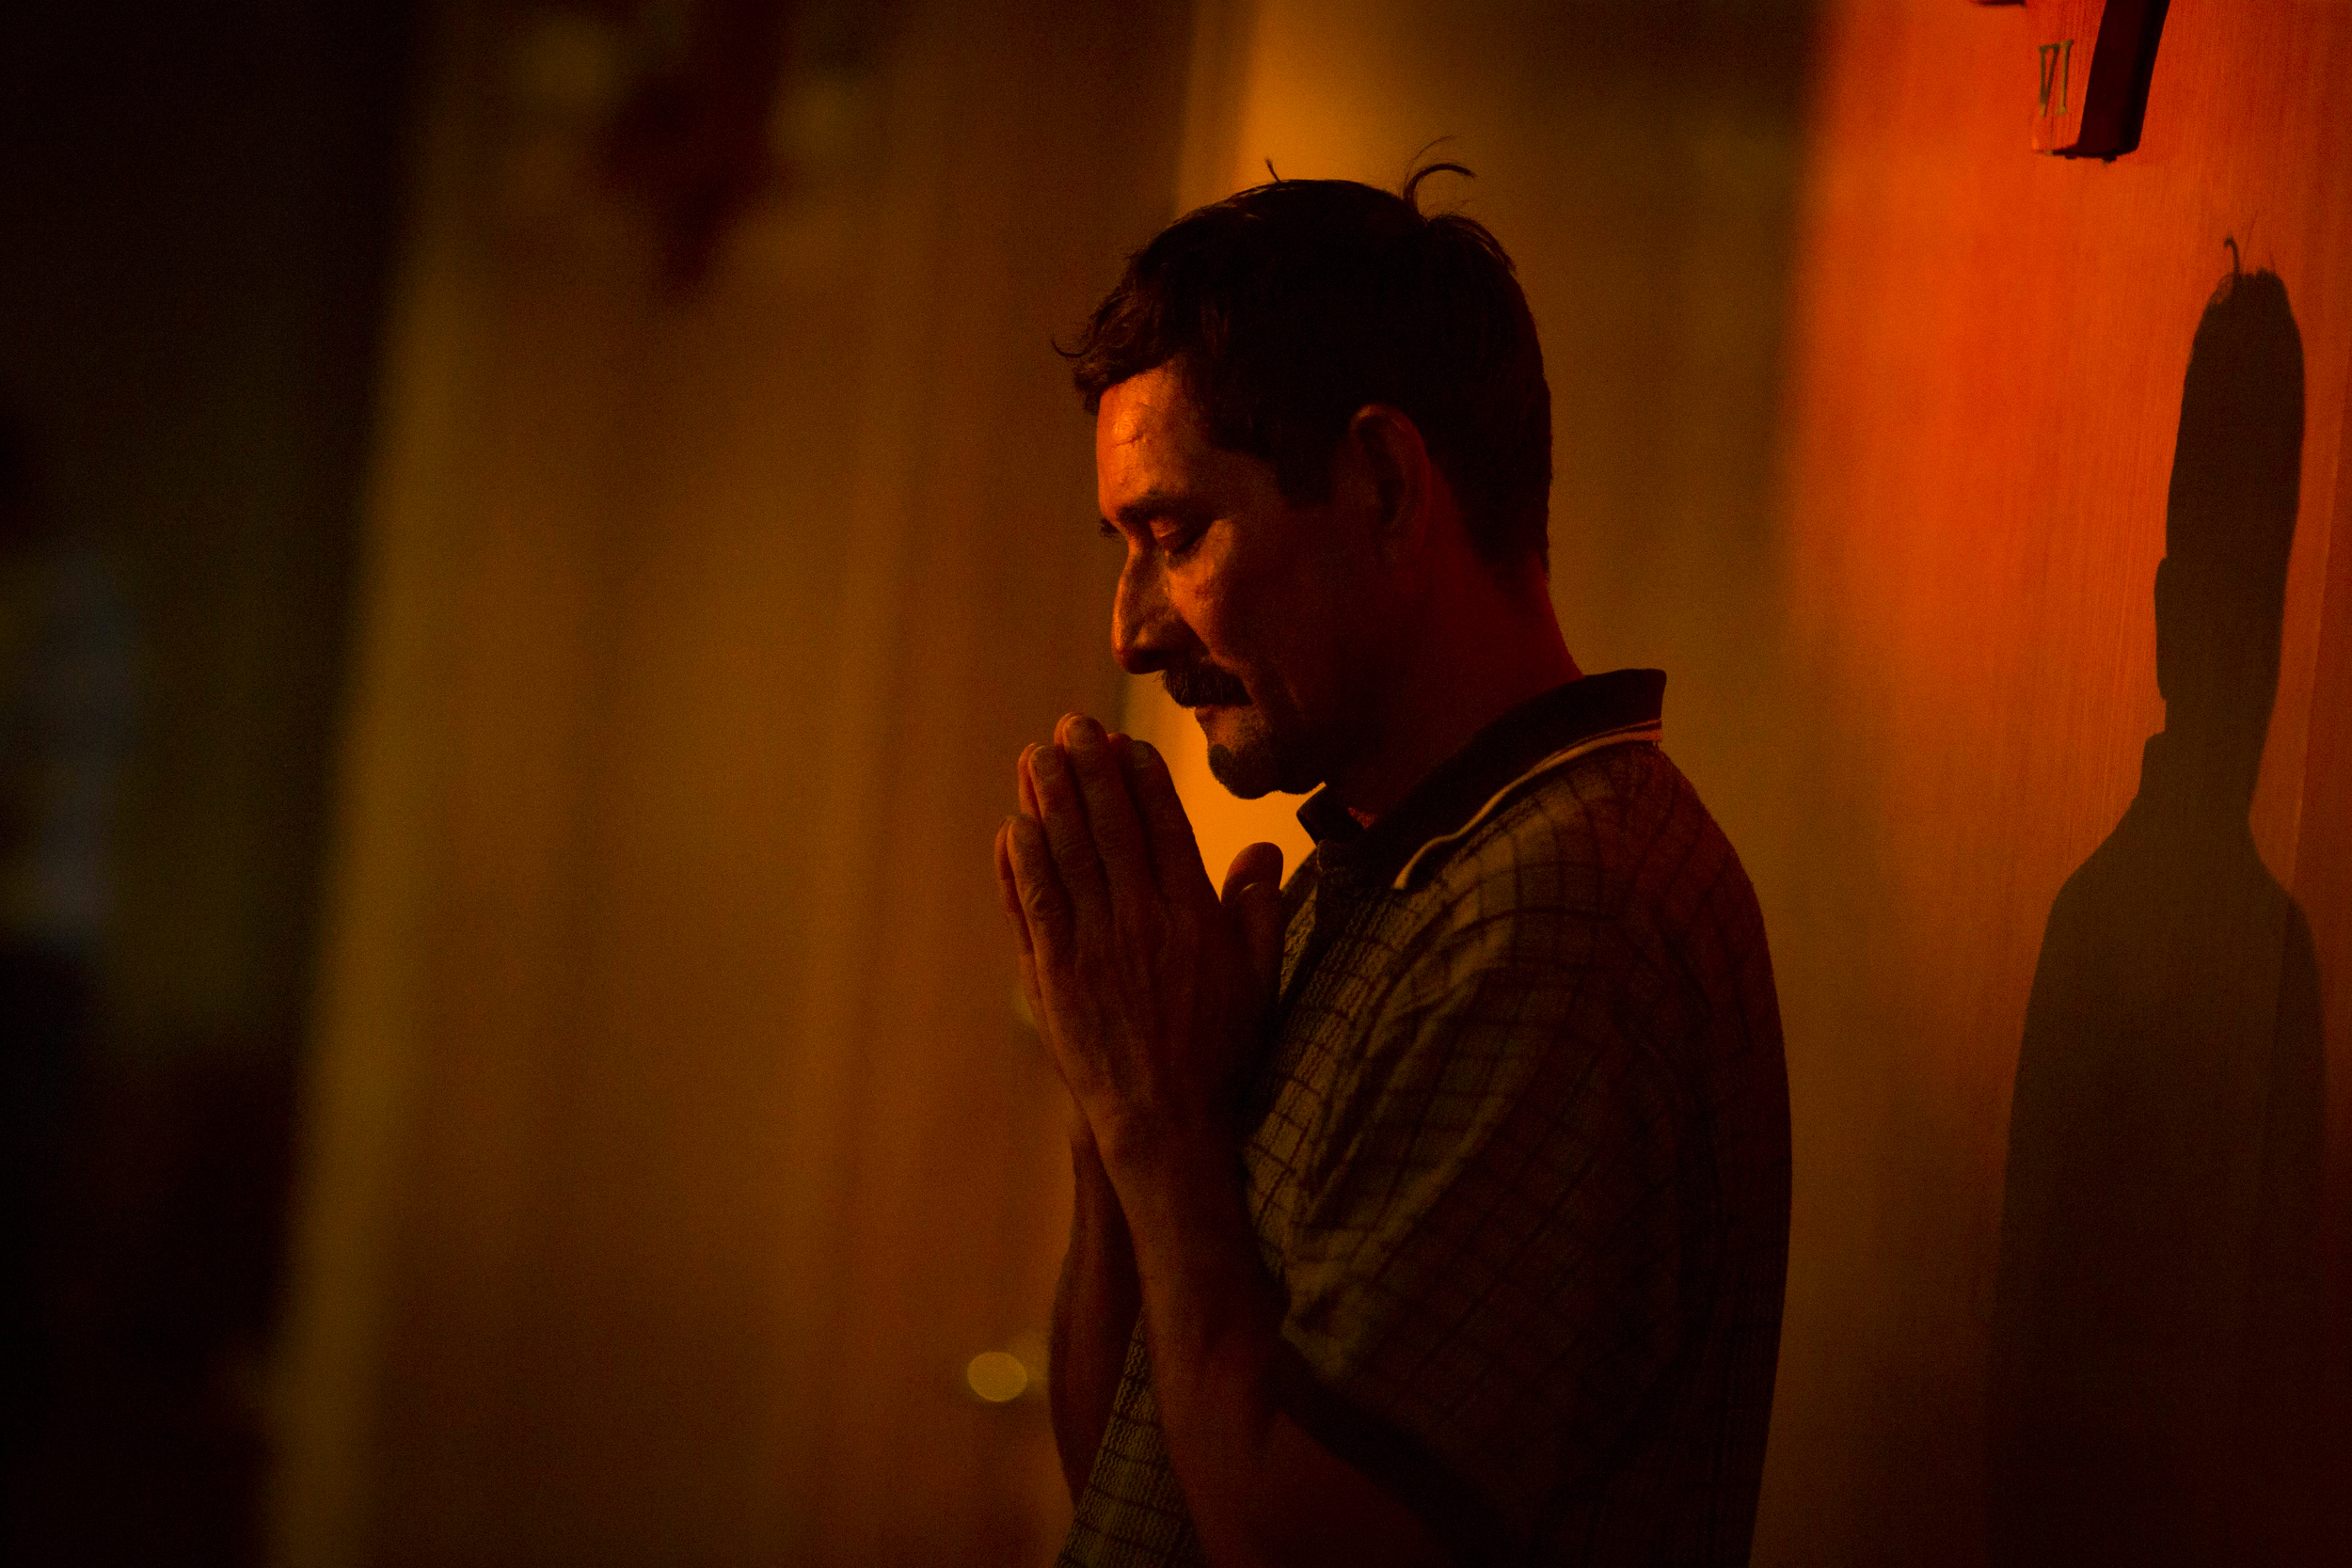 Antonio Mendez prays to the relic of Saint Toribio Romoas, the Catholic saint of immigrants and border crossers, from the back of the room at Santiago de Compostela Church in Lake Forest on Friday July 11, 2014.